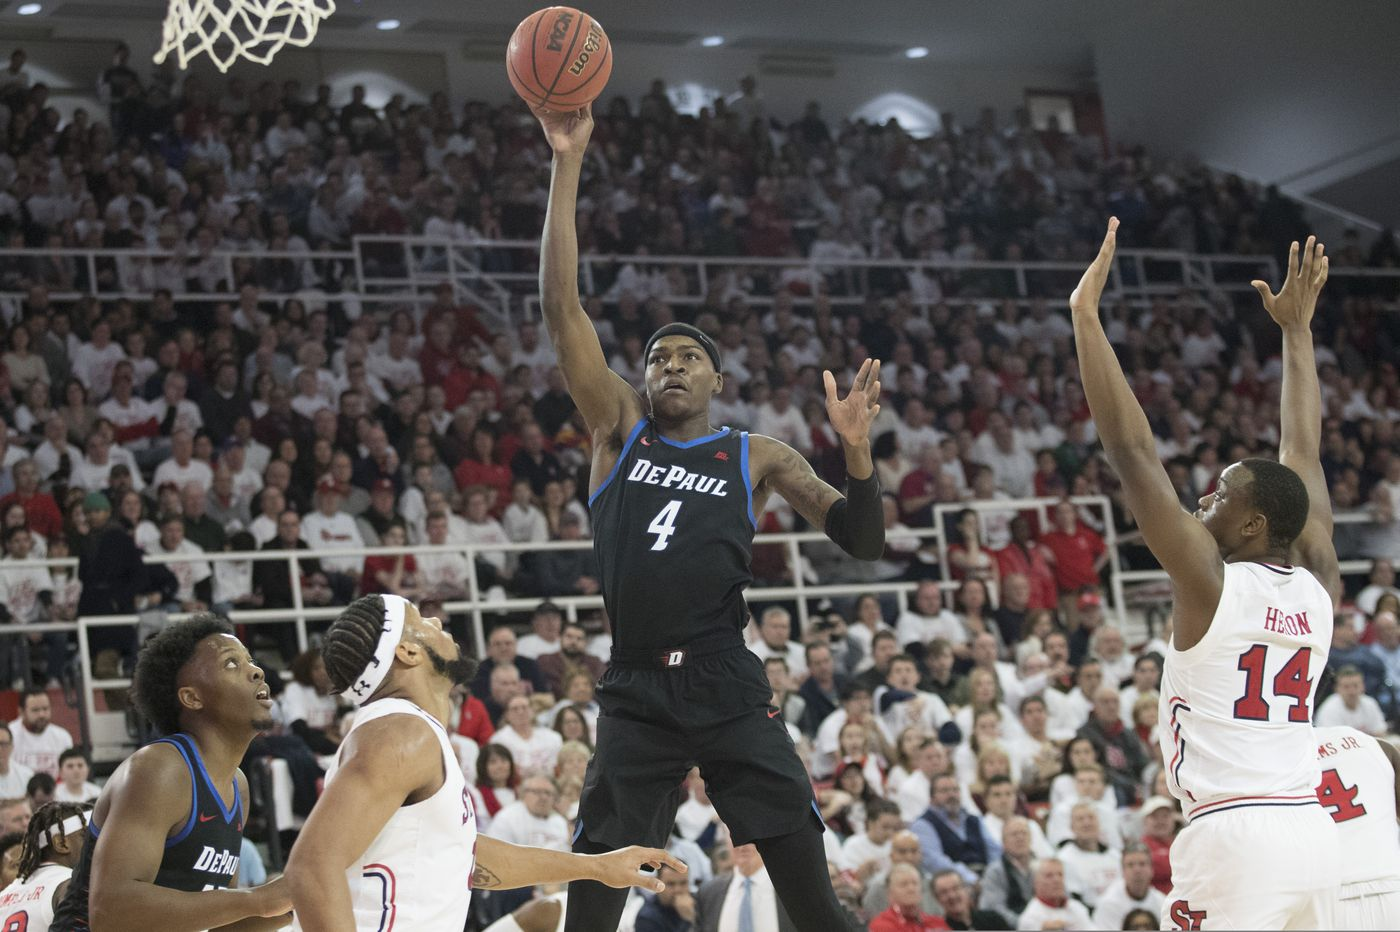 Sixers signing second-round draft pick Paul Reed to two-way contract